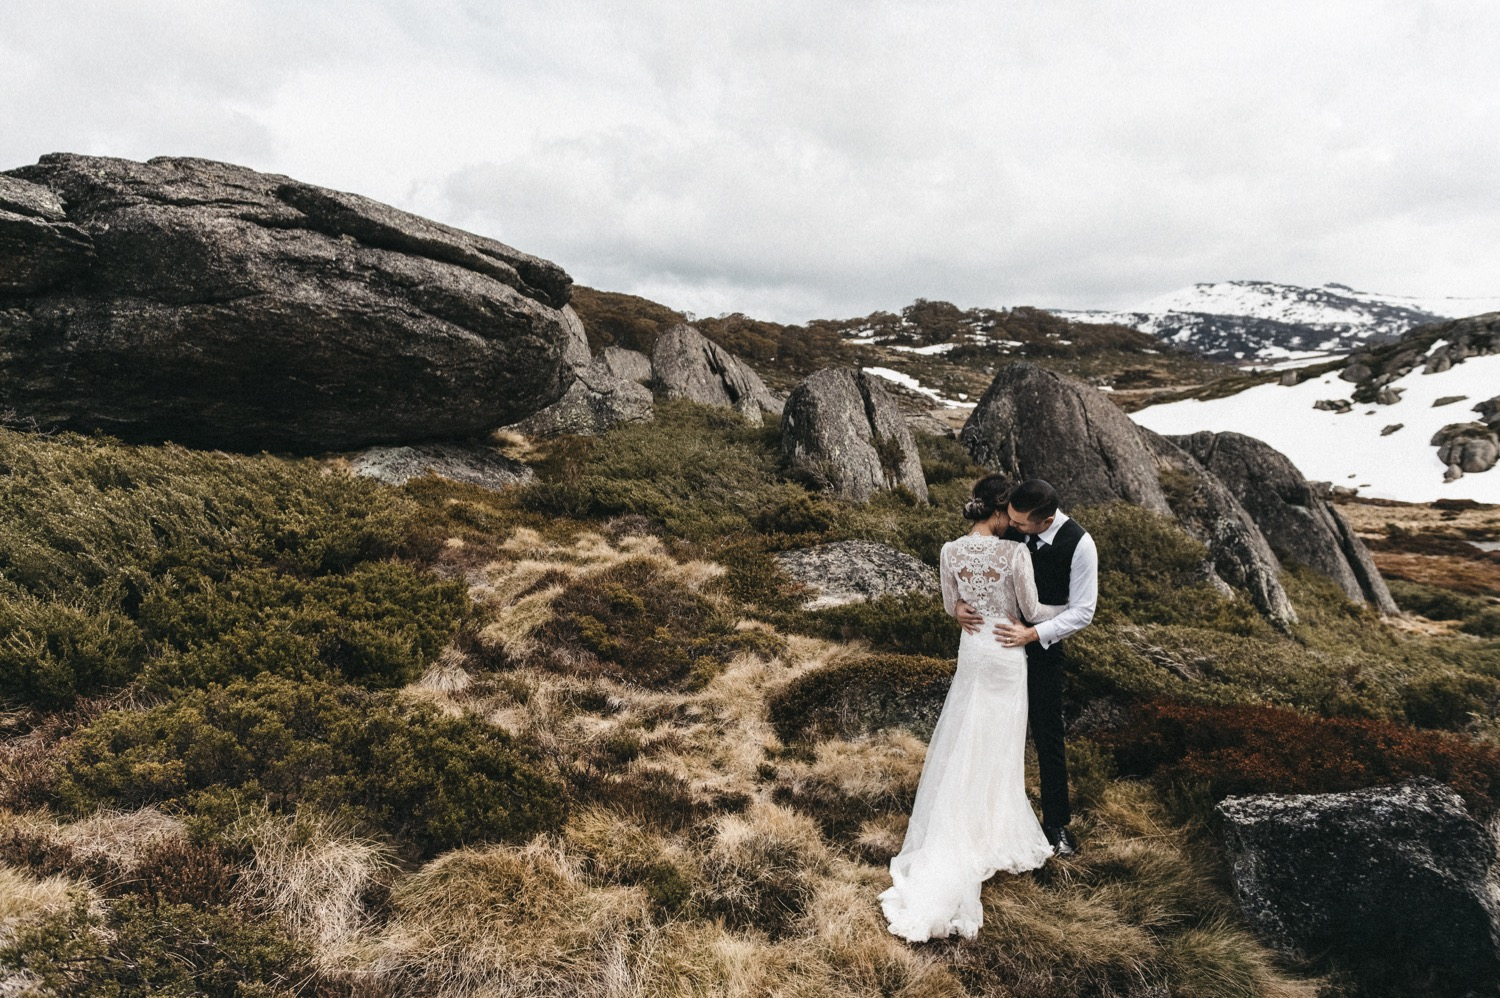 Cindy_Kam-Perisher-42_Snowy_Mountains_wedding_photographer_kosciuszko_national_park_lauren_campbell_1500.jpg